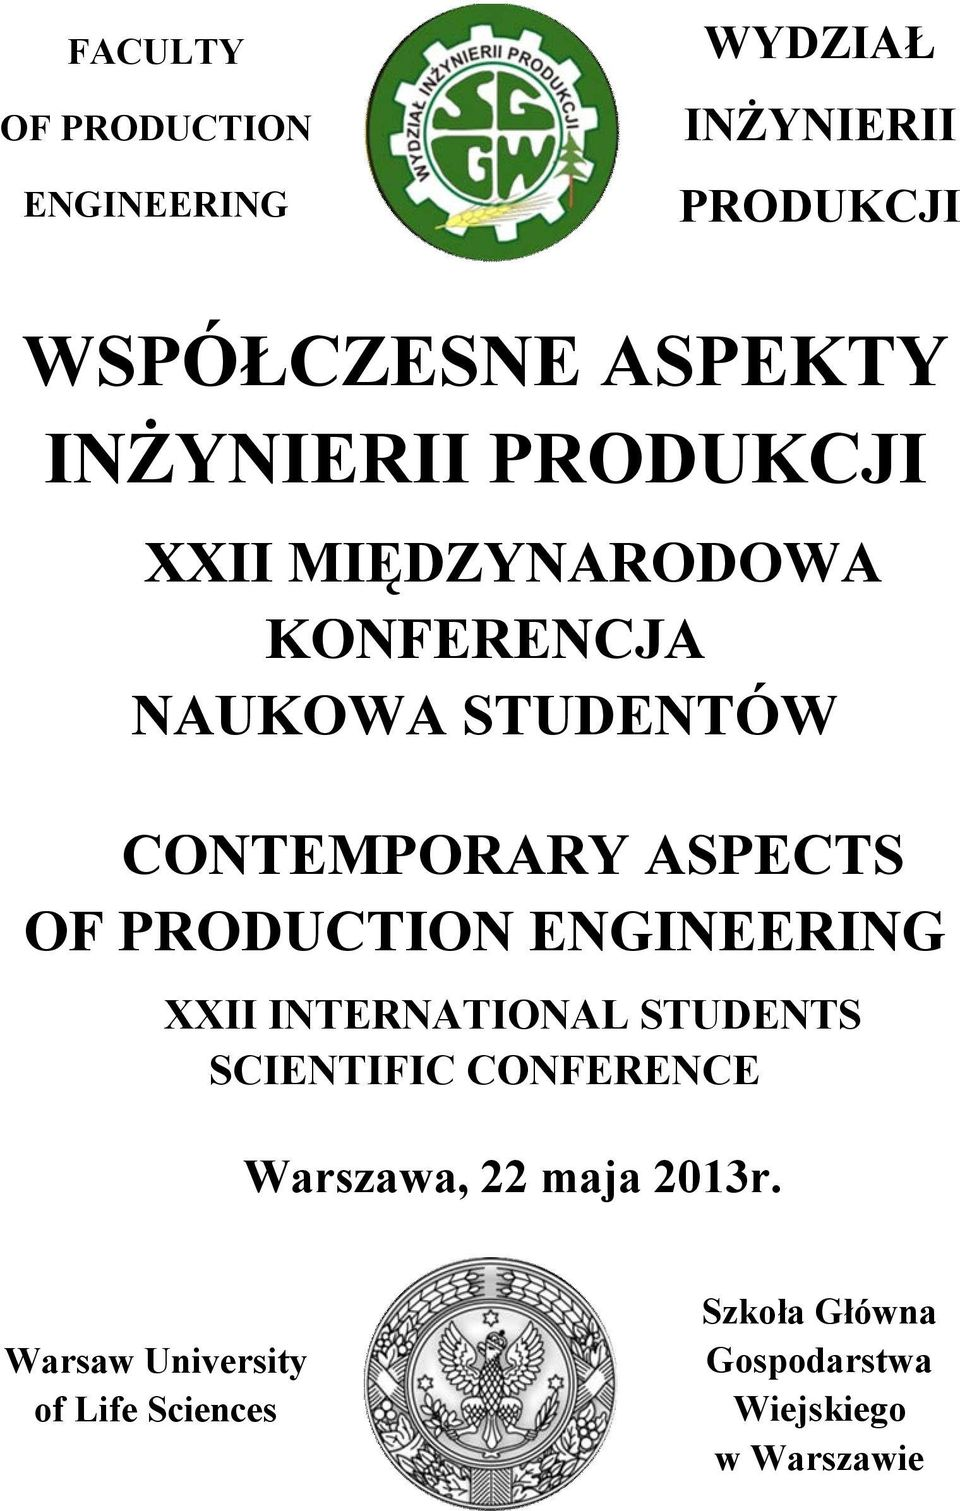 ASPECTS OF PRODUCTION ENGINEERING XXII INTERNATIONAL STUDENTS SCIENTIFIC CONFERENCE